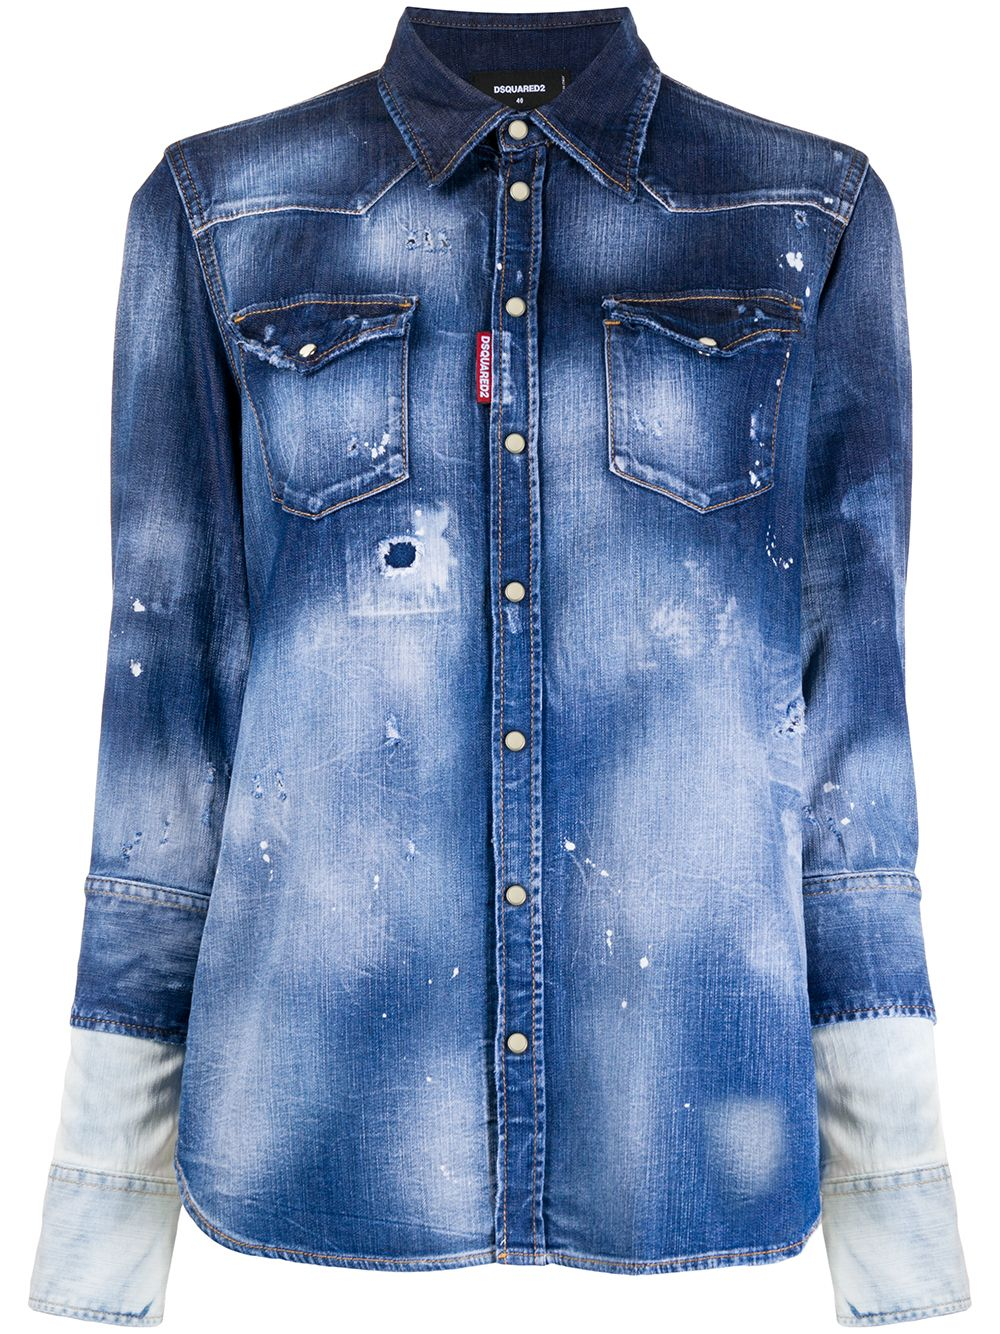 Dsquared2 Jeansjacke im Distressed-Look - Blau von Dsquared2